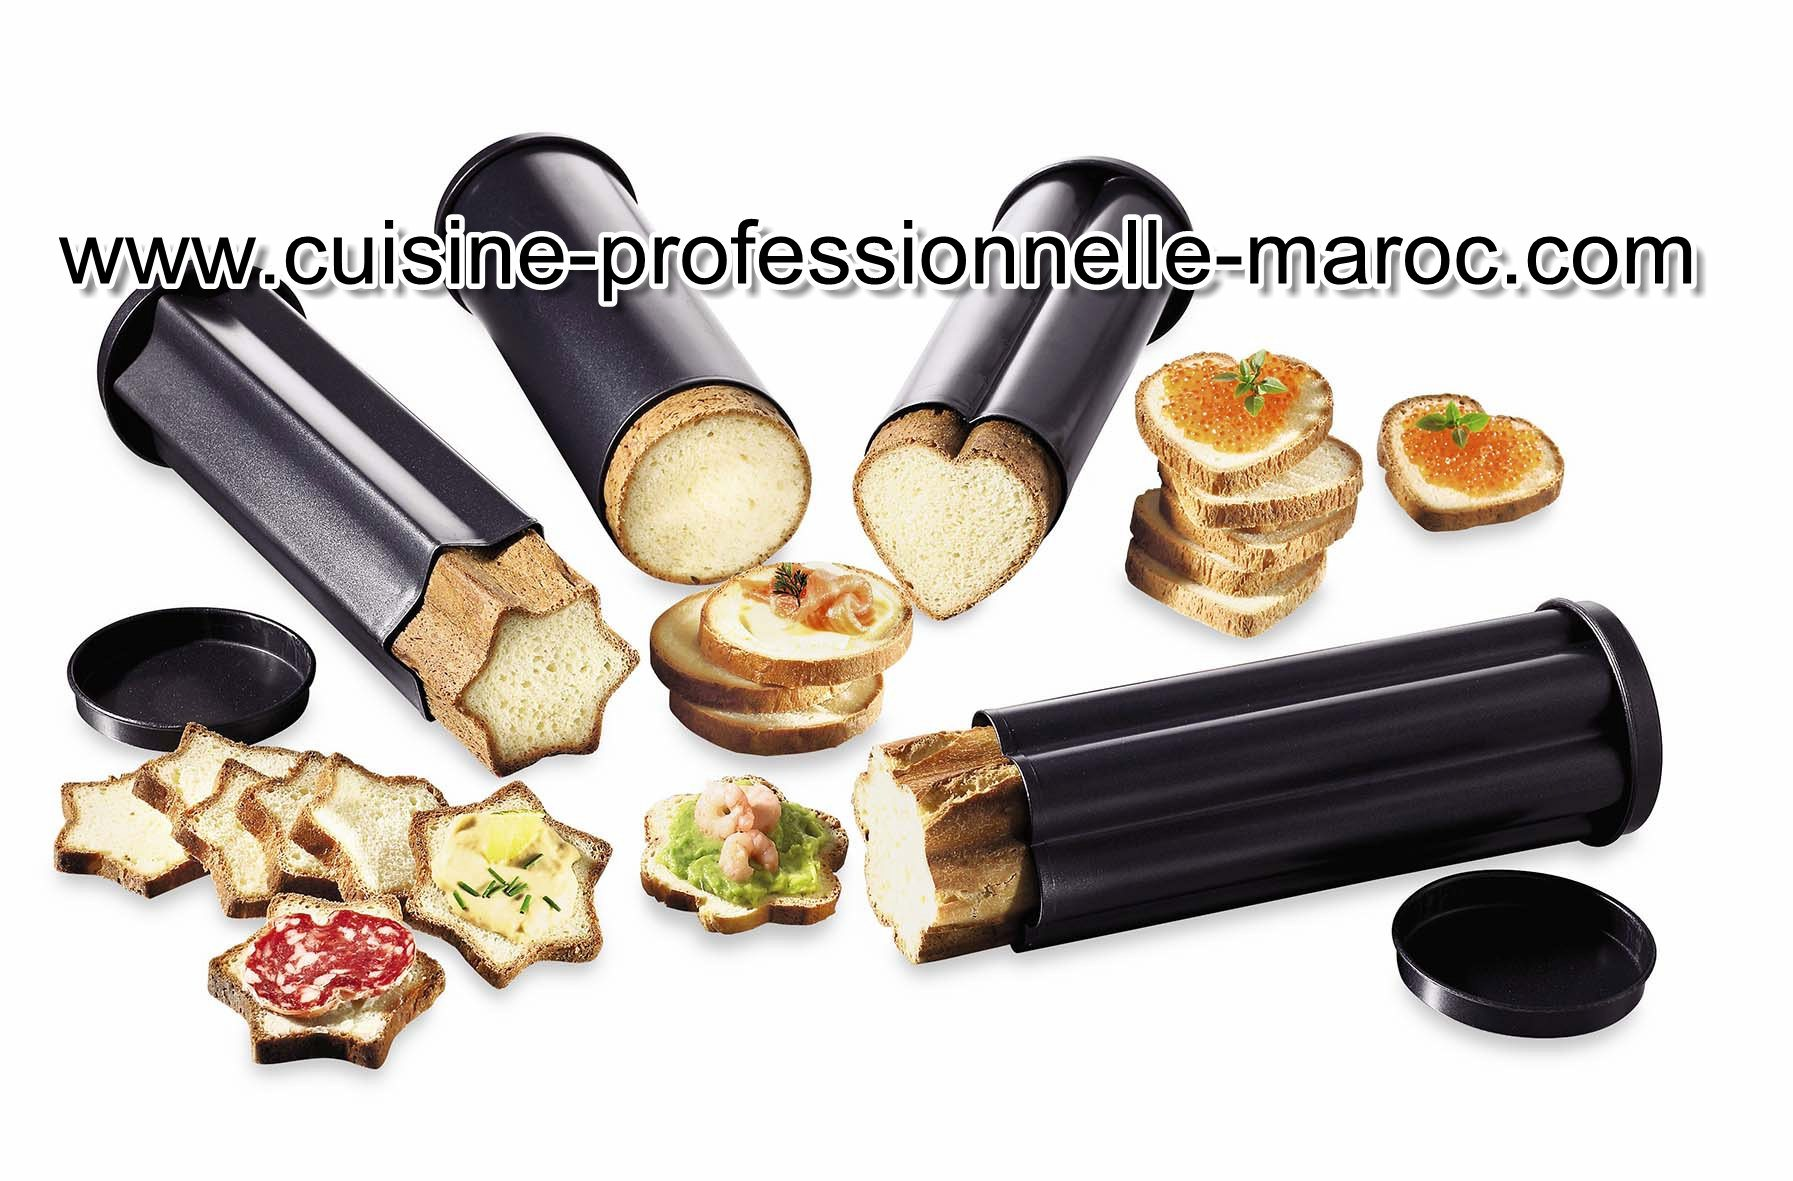 mat riel patisserie professionnel pas cher ustensiles de cuisine. Black Bedroom Furniture Sets. Home Design Ideas